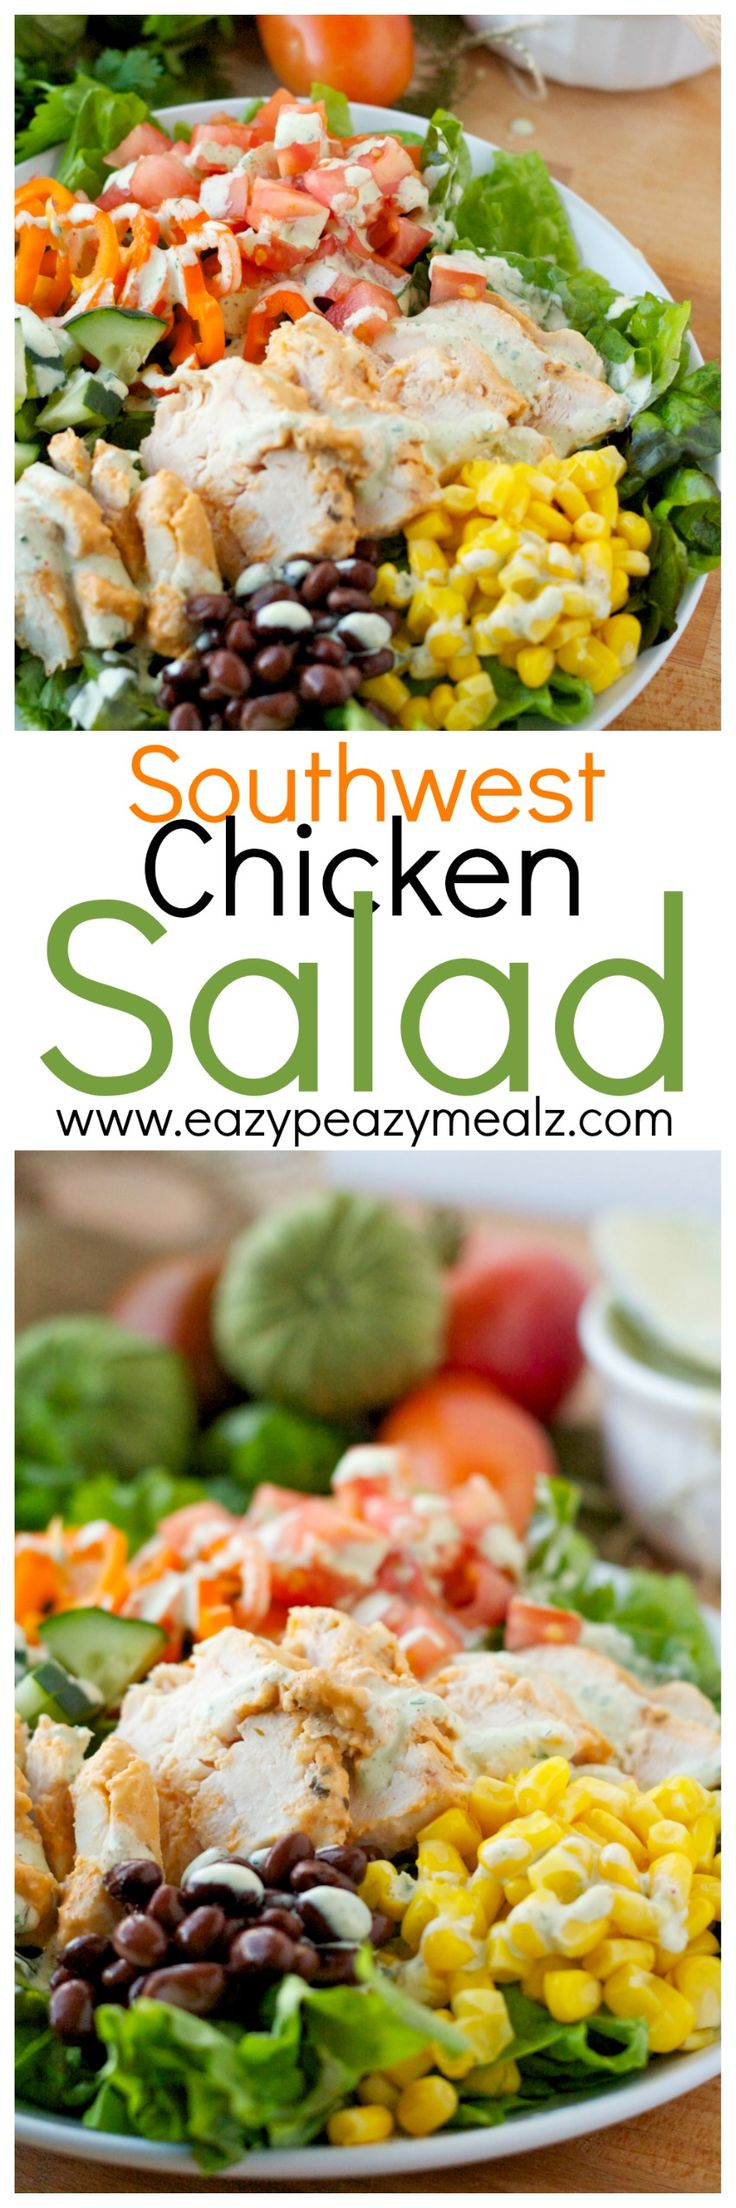 Southwest Chicken Salad: Eat healthy never tasted so good. This salad is packed with everything delicious and topped with marinated chicken! - Eazy Peazy Mealz